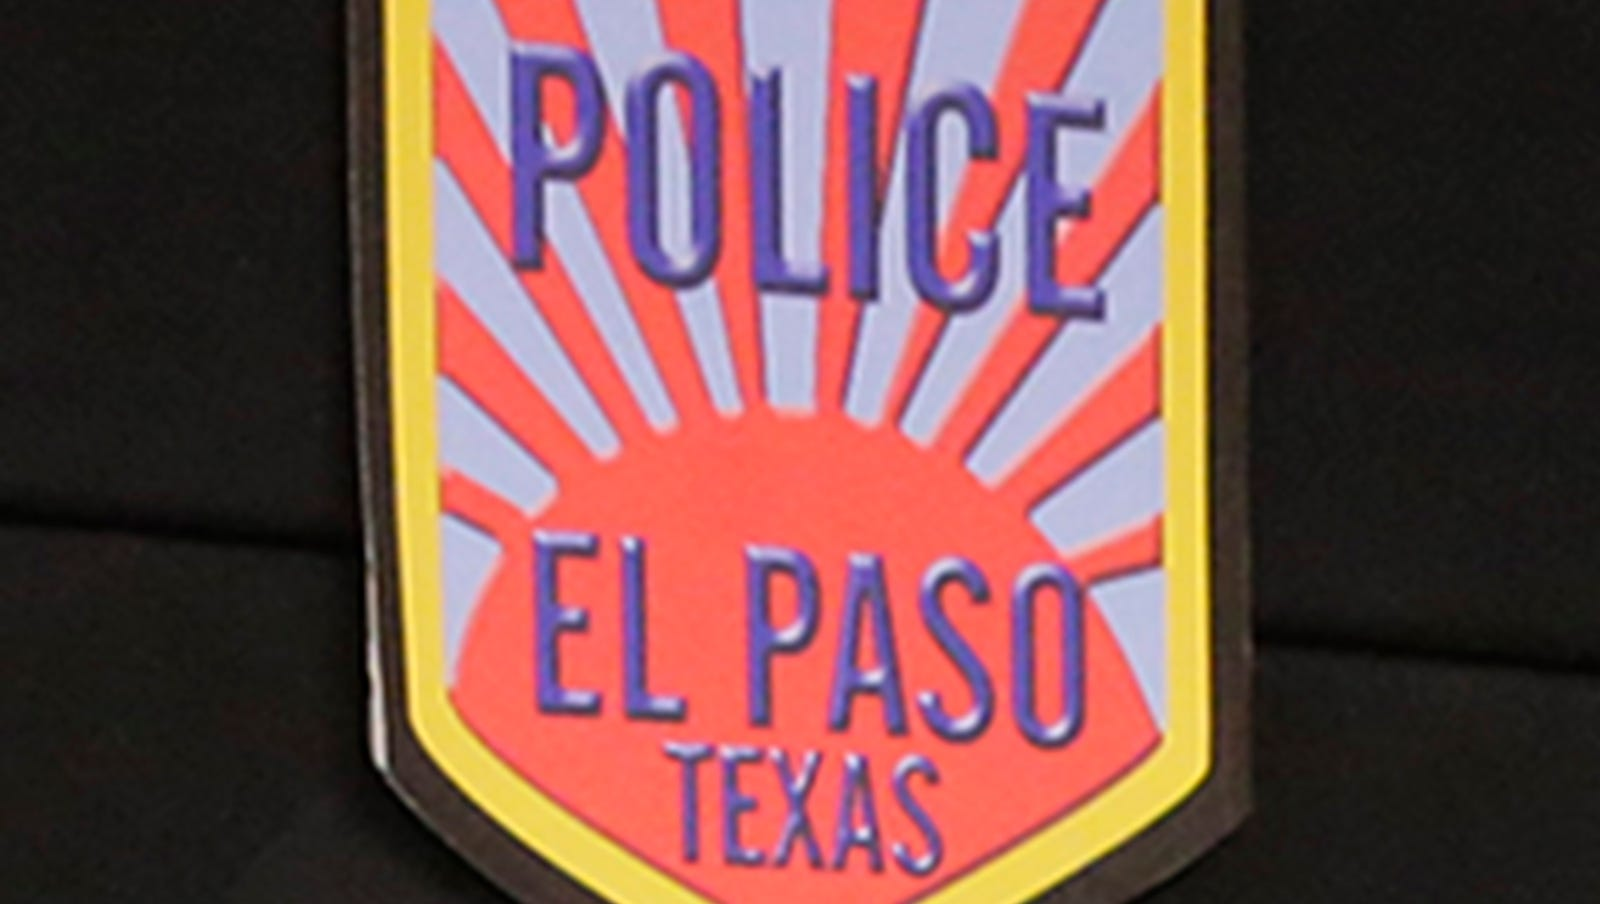 El Paso Police Stations Open For Meetings For Craigslist Online Sales